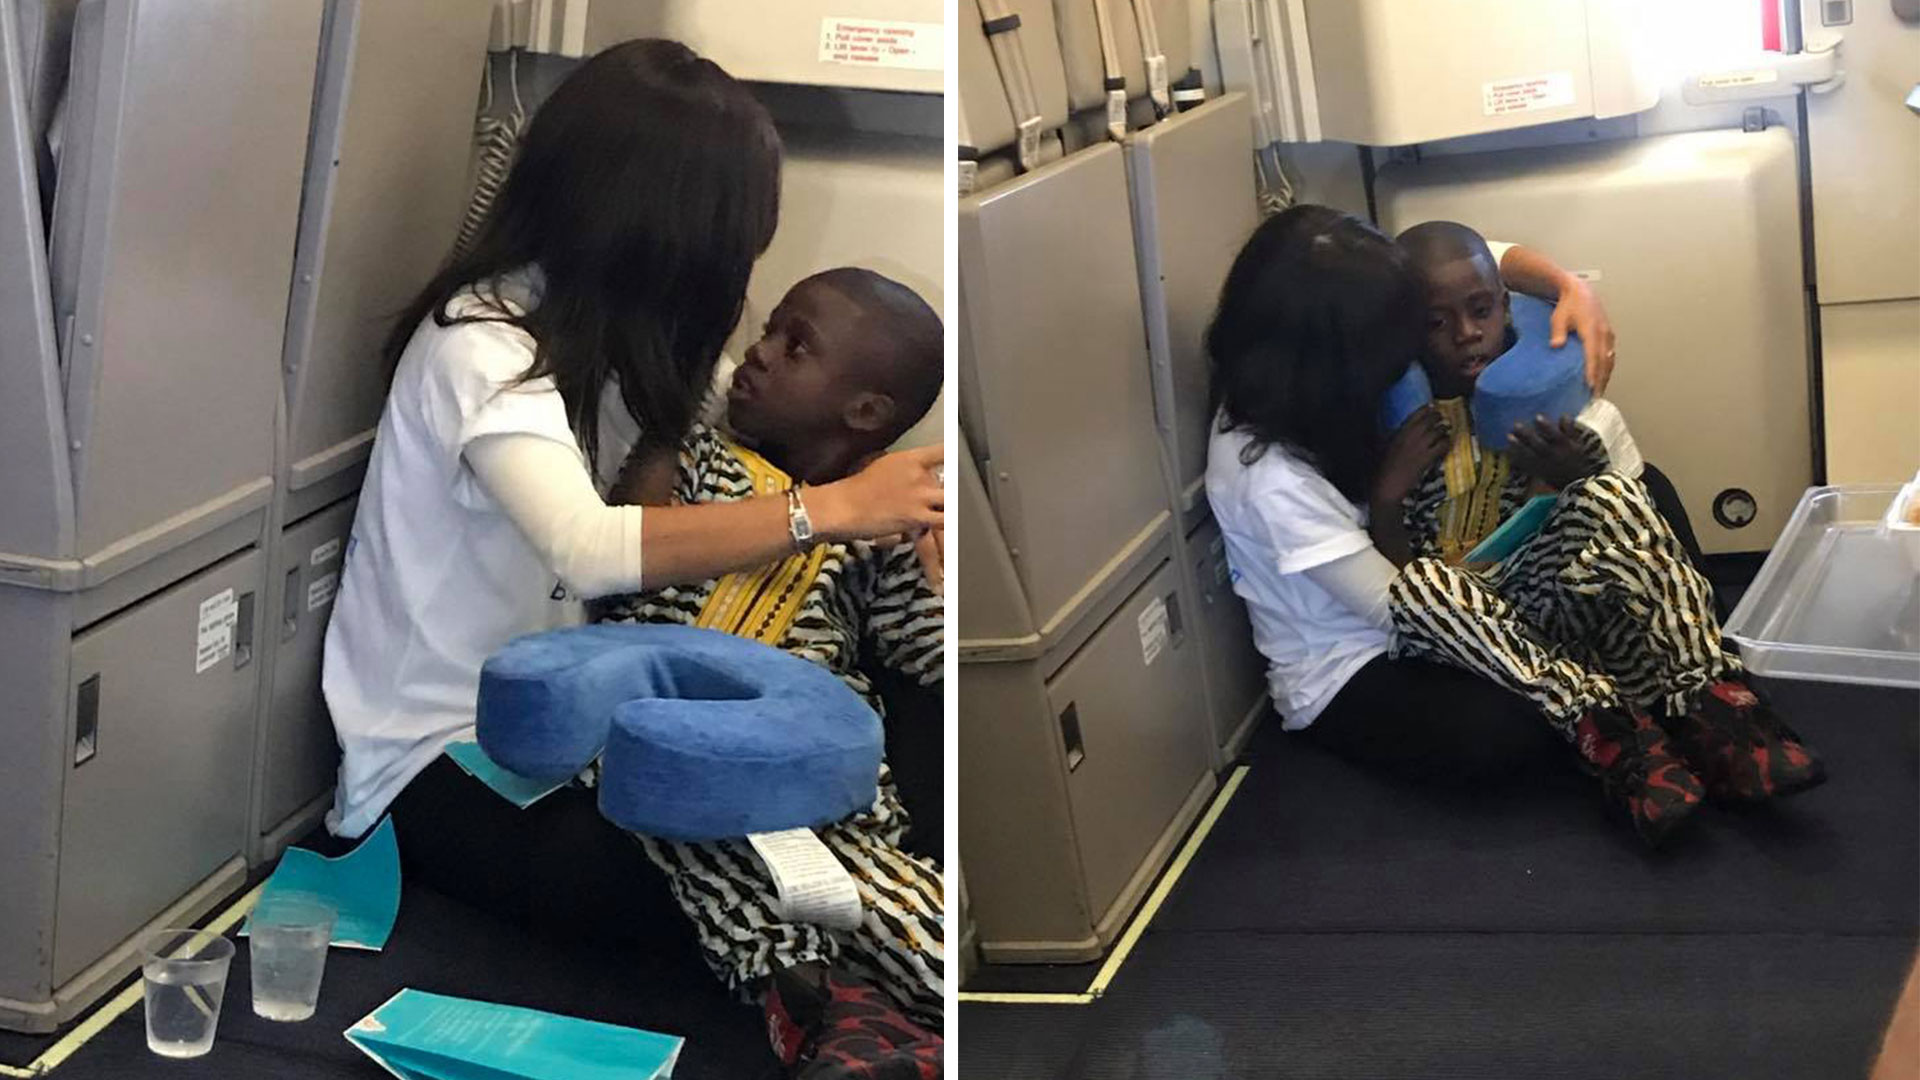 Rochel Groner Comforting Boy On Flight